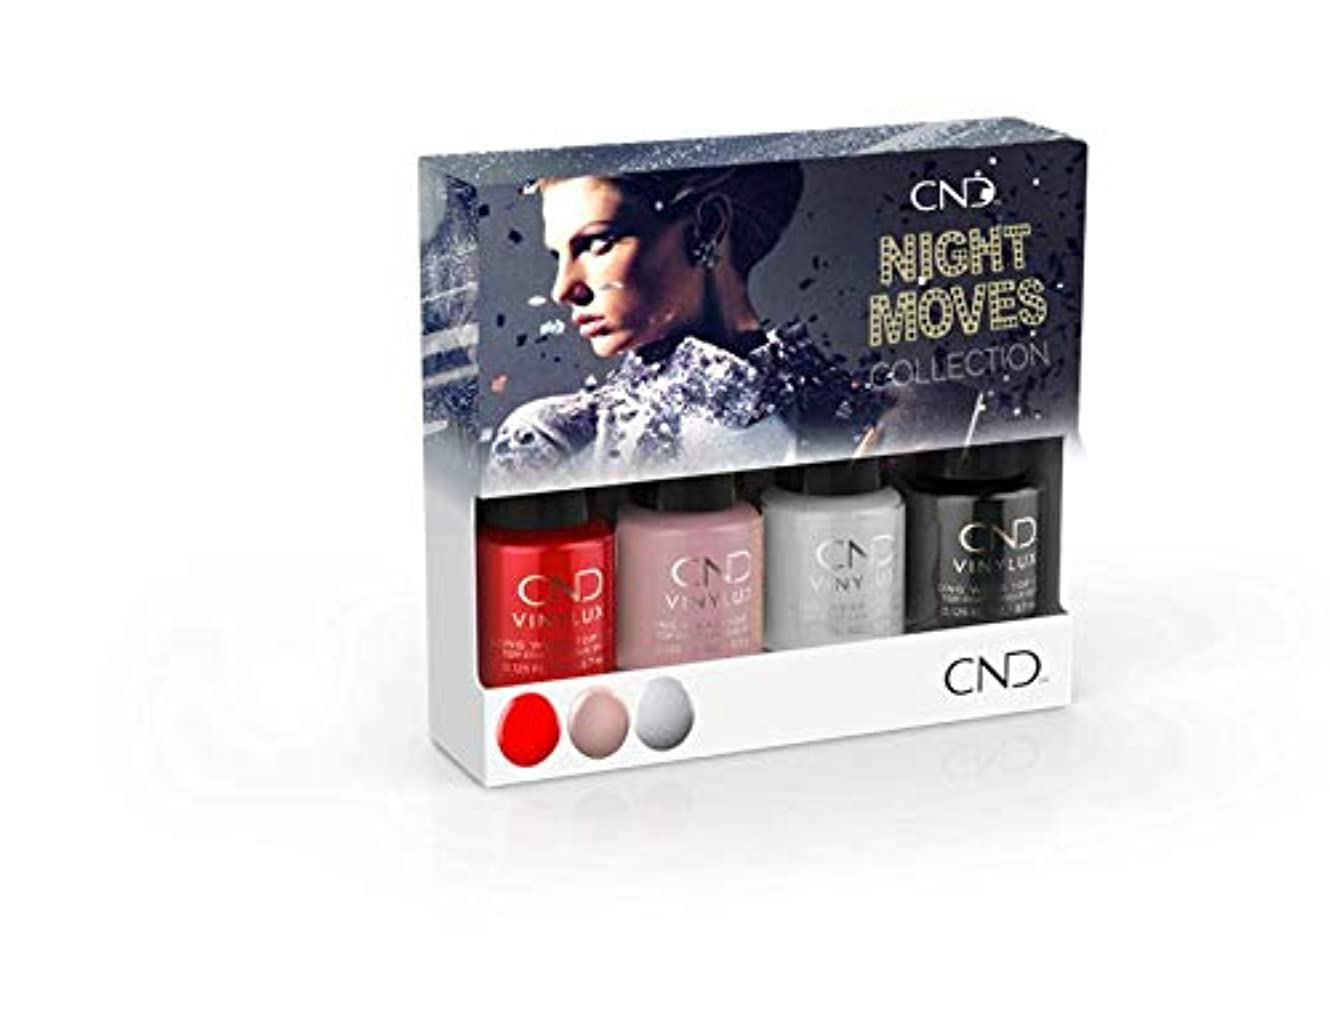 ぴったりアーサー受け取るCND Vinylux - Night Moves The Collection - Mini 4pk - 3.7 mL / 0.125 oz